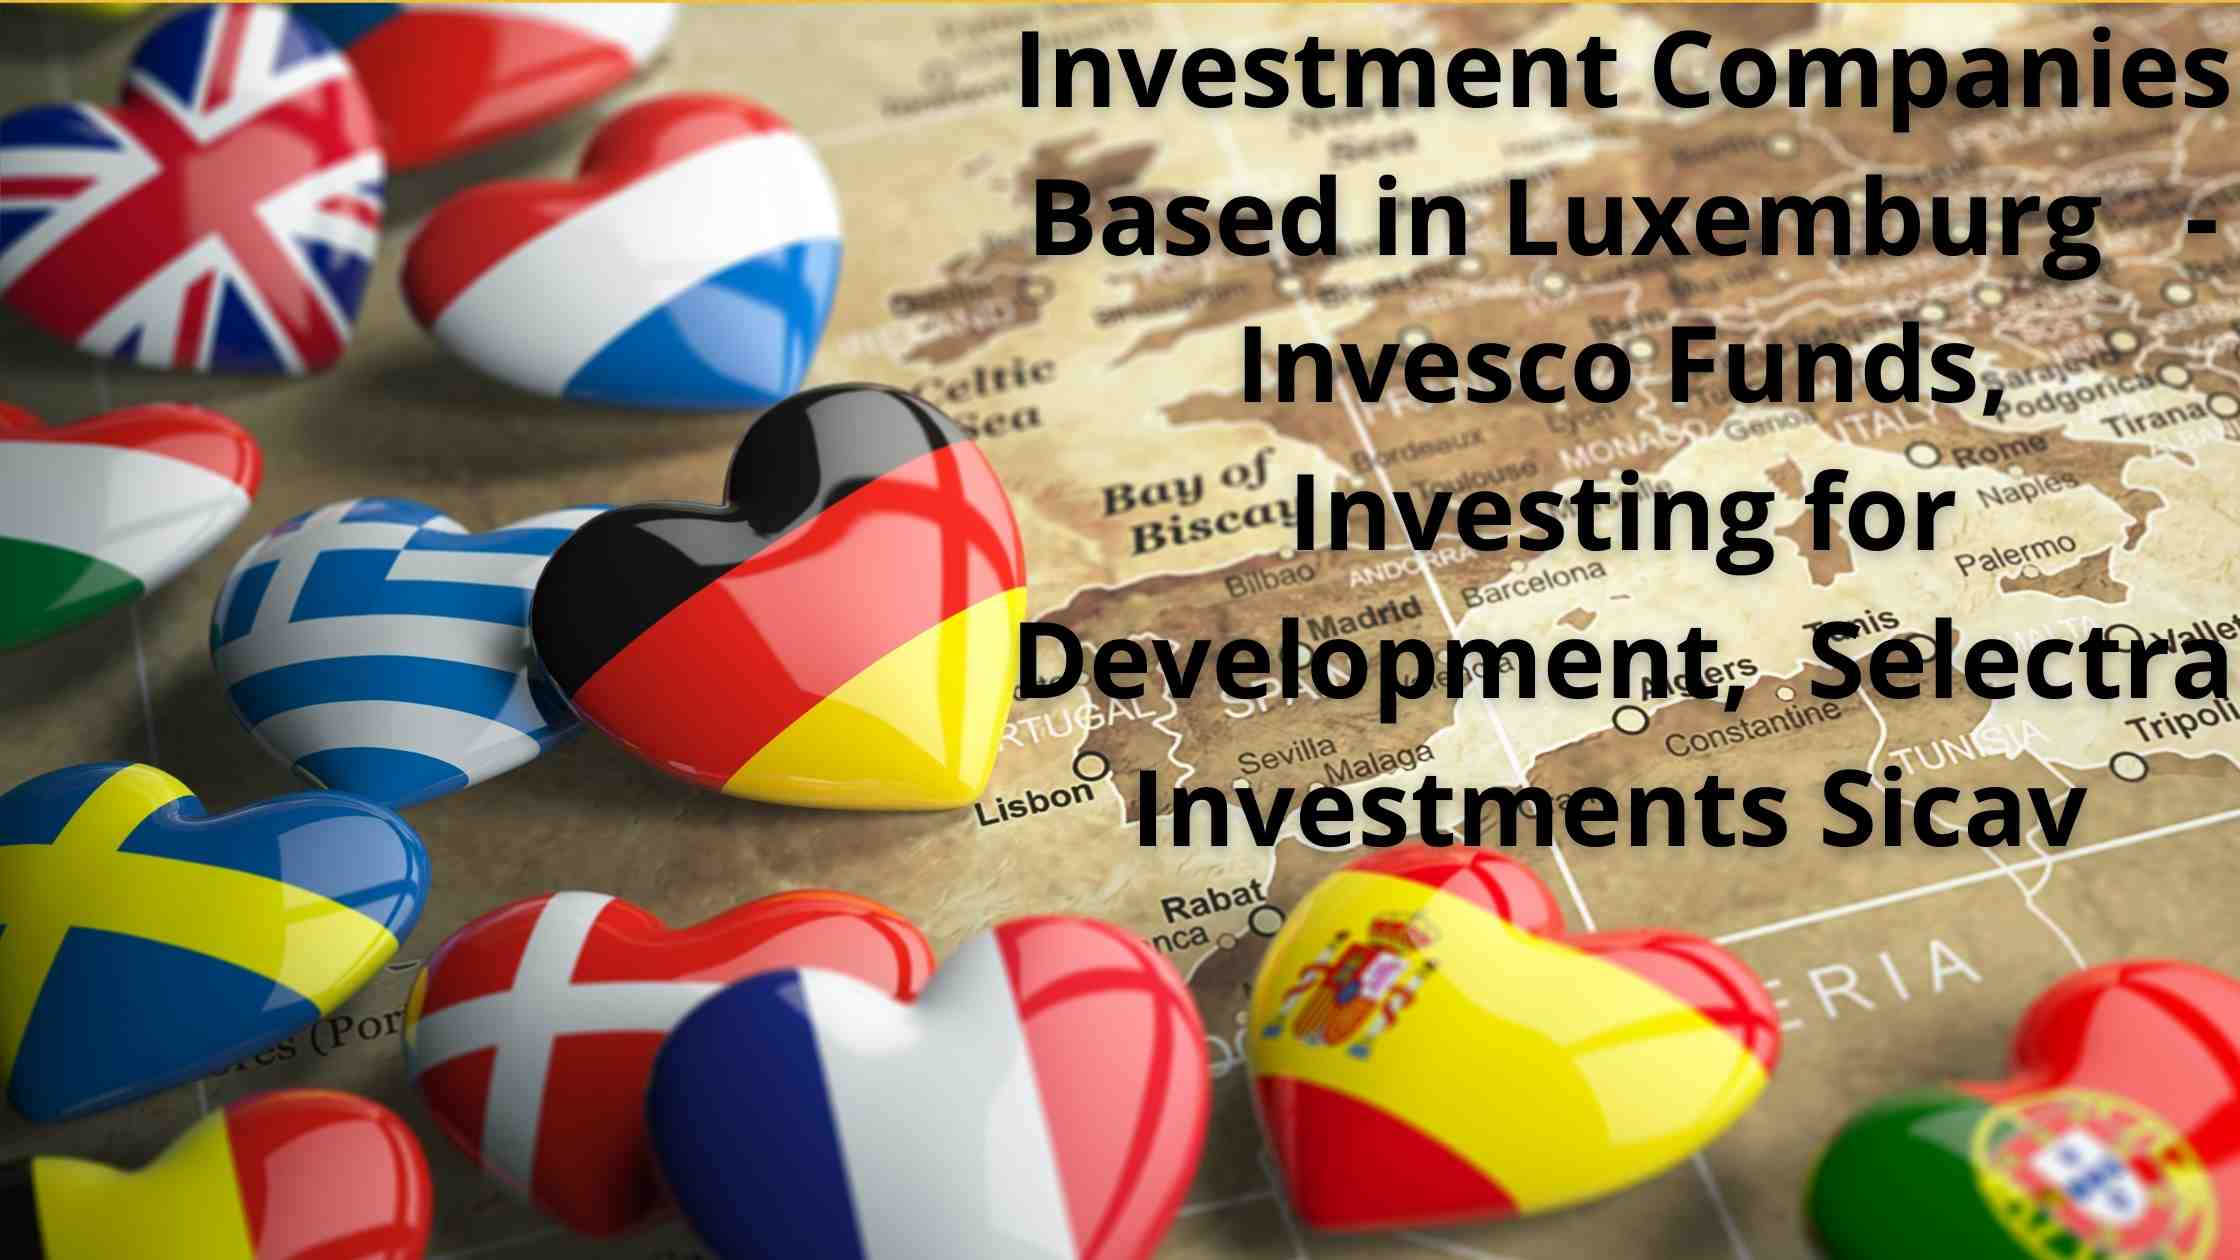 Investment Companies Based in Luxemburg - Invesco Funds, Investing for Development, Selectra Investments Sicav